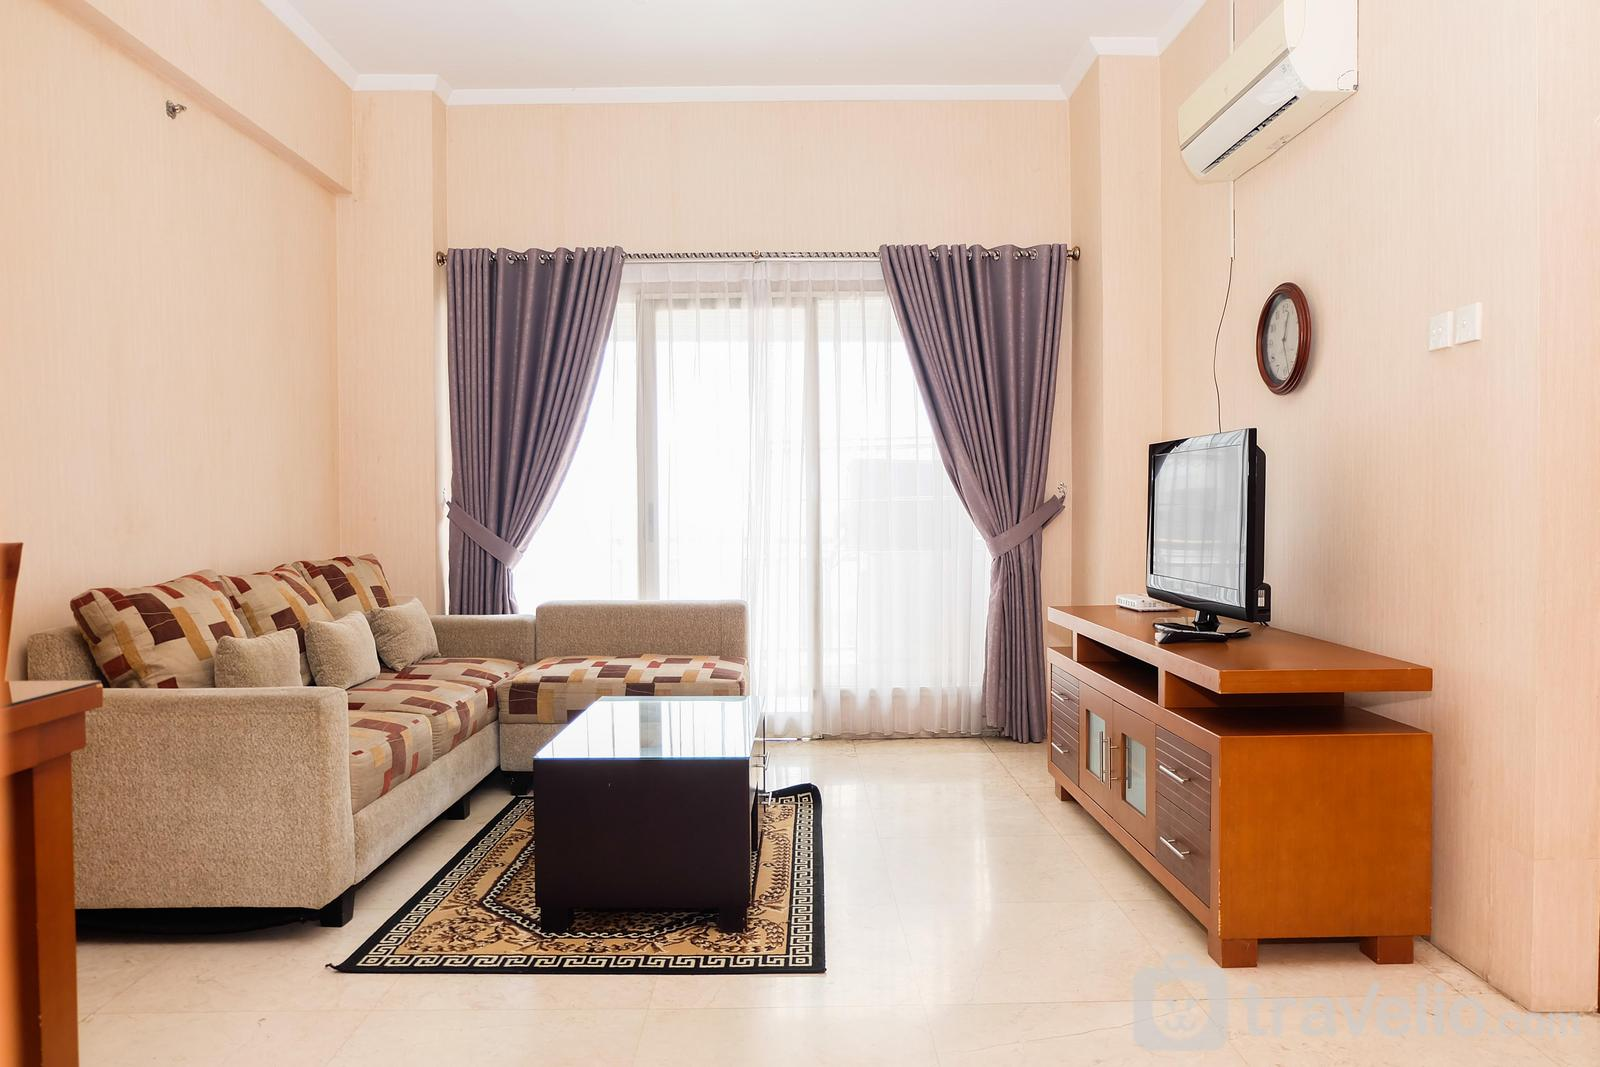 Poins Square Shopping Mall & Apartment - Spacious 3BR Poins Square Apartment By Travelio